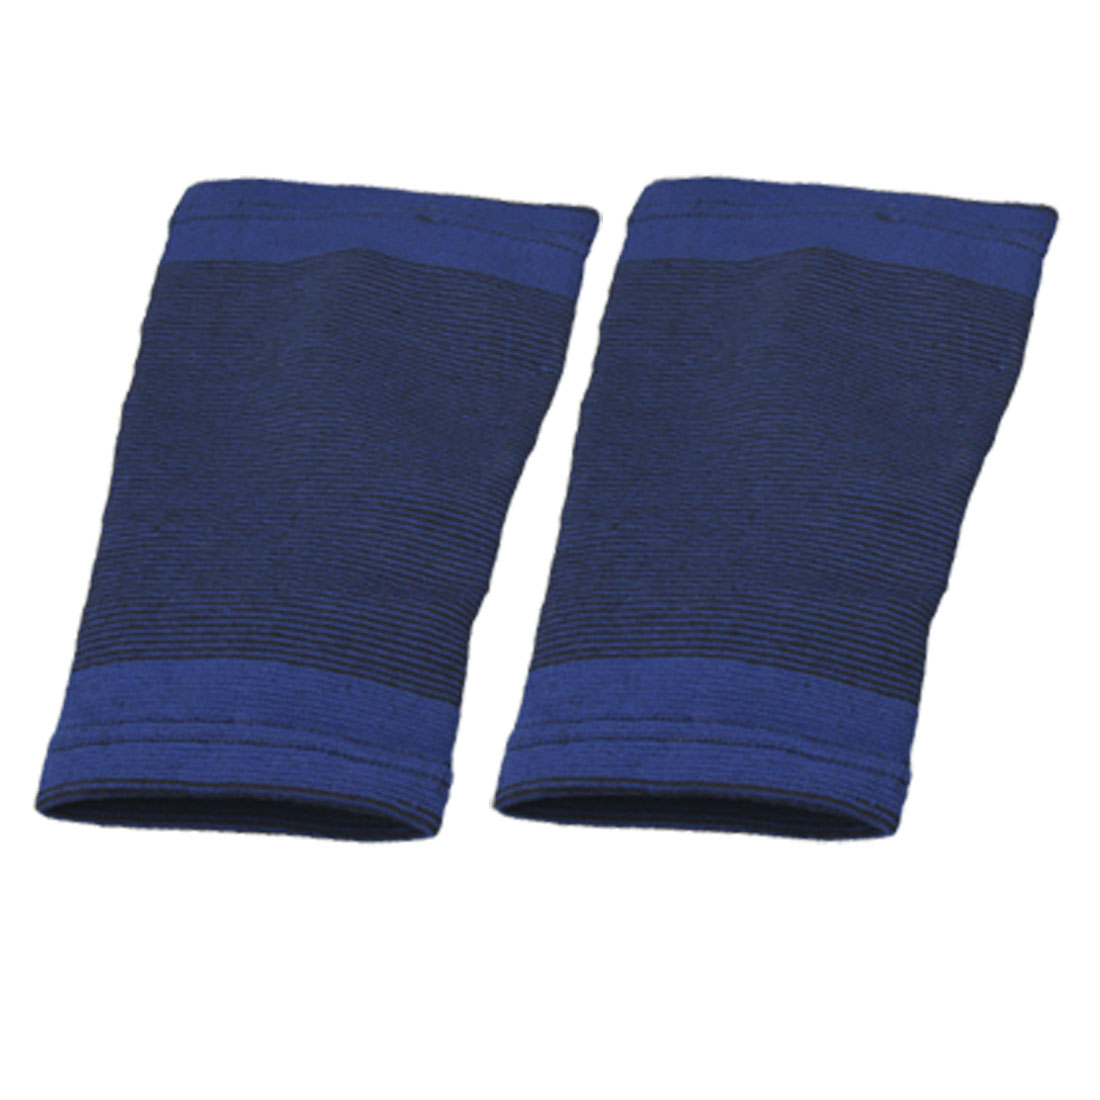 2PCS Blue Stretchy Knee Protector Brace Sports Bandage